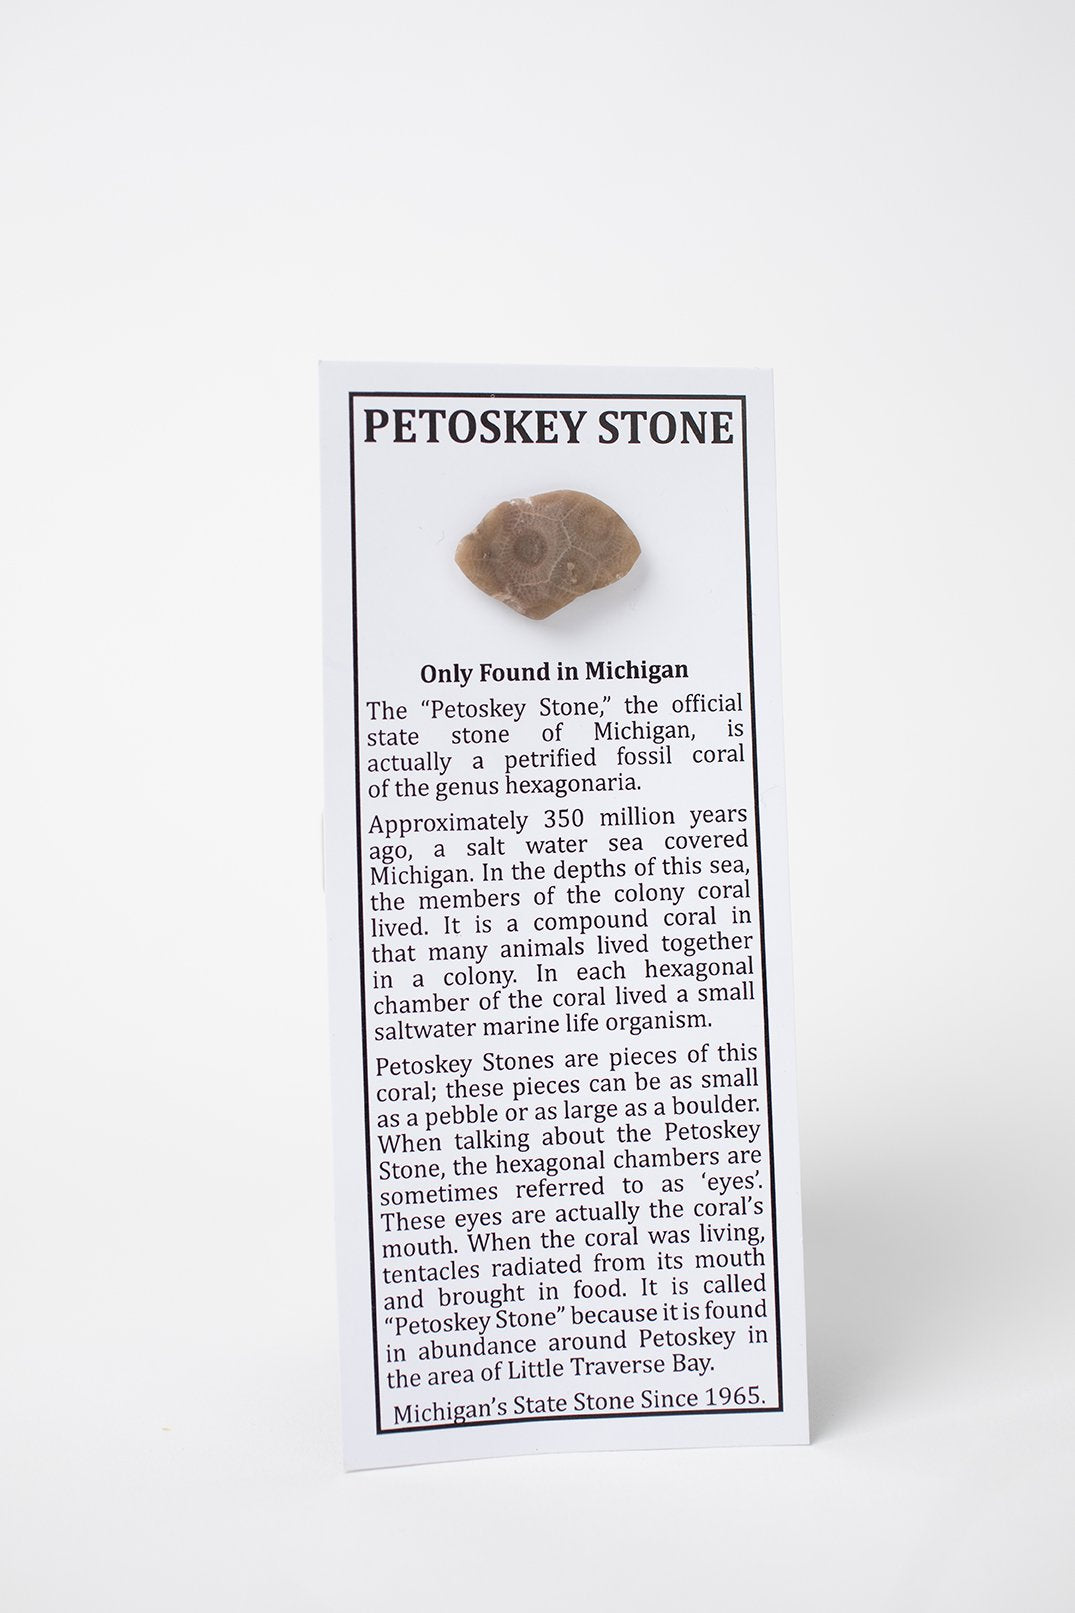 The Petoskey stone from Grandpa Shorter's Gifts